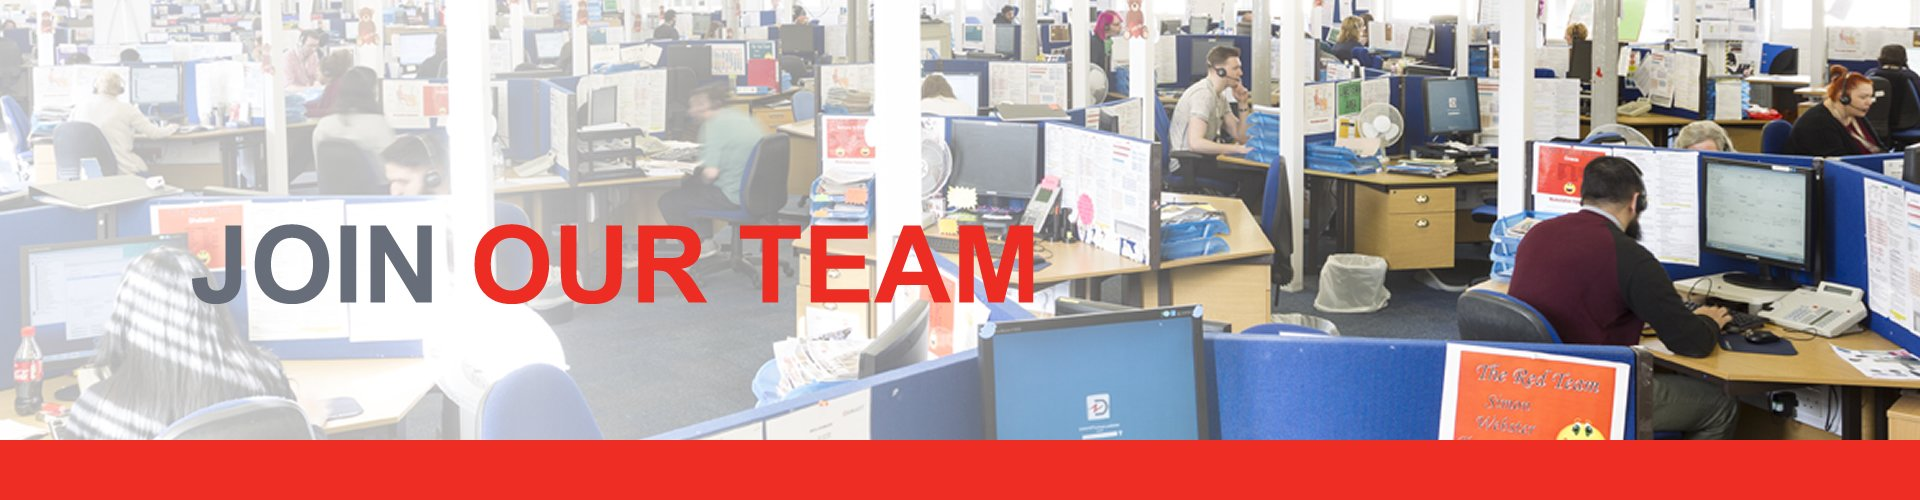 join our team - damart